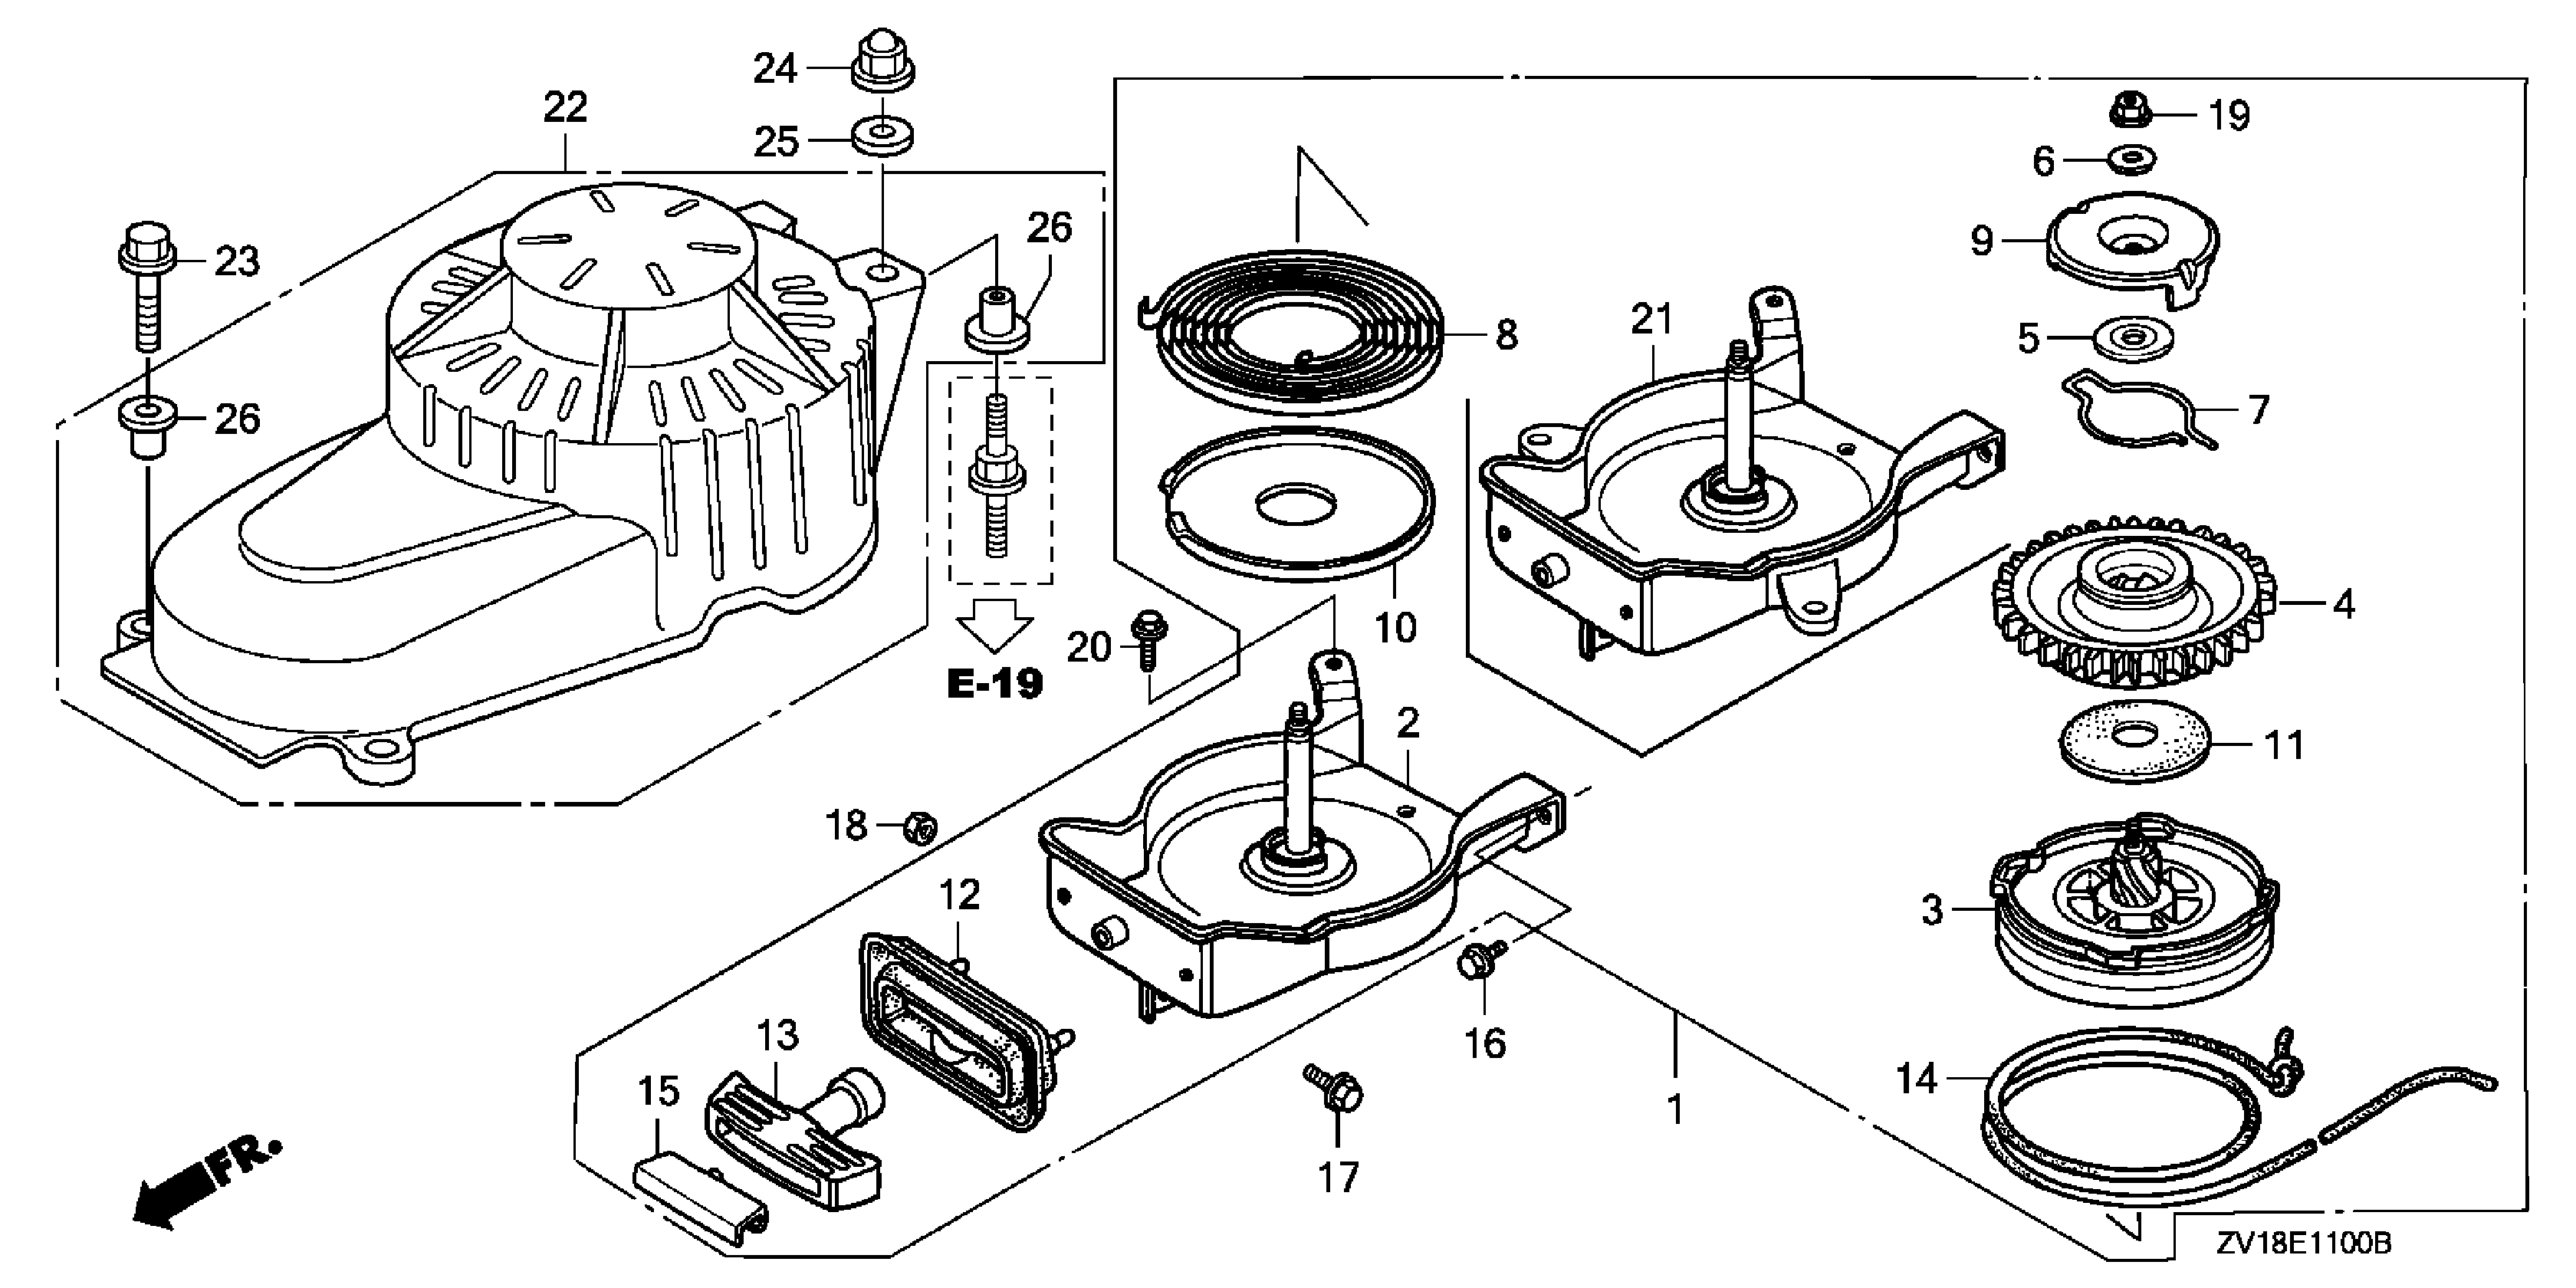 suzuki outboard motor parts diagram